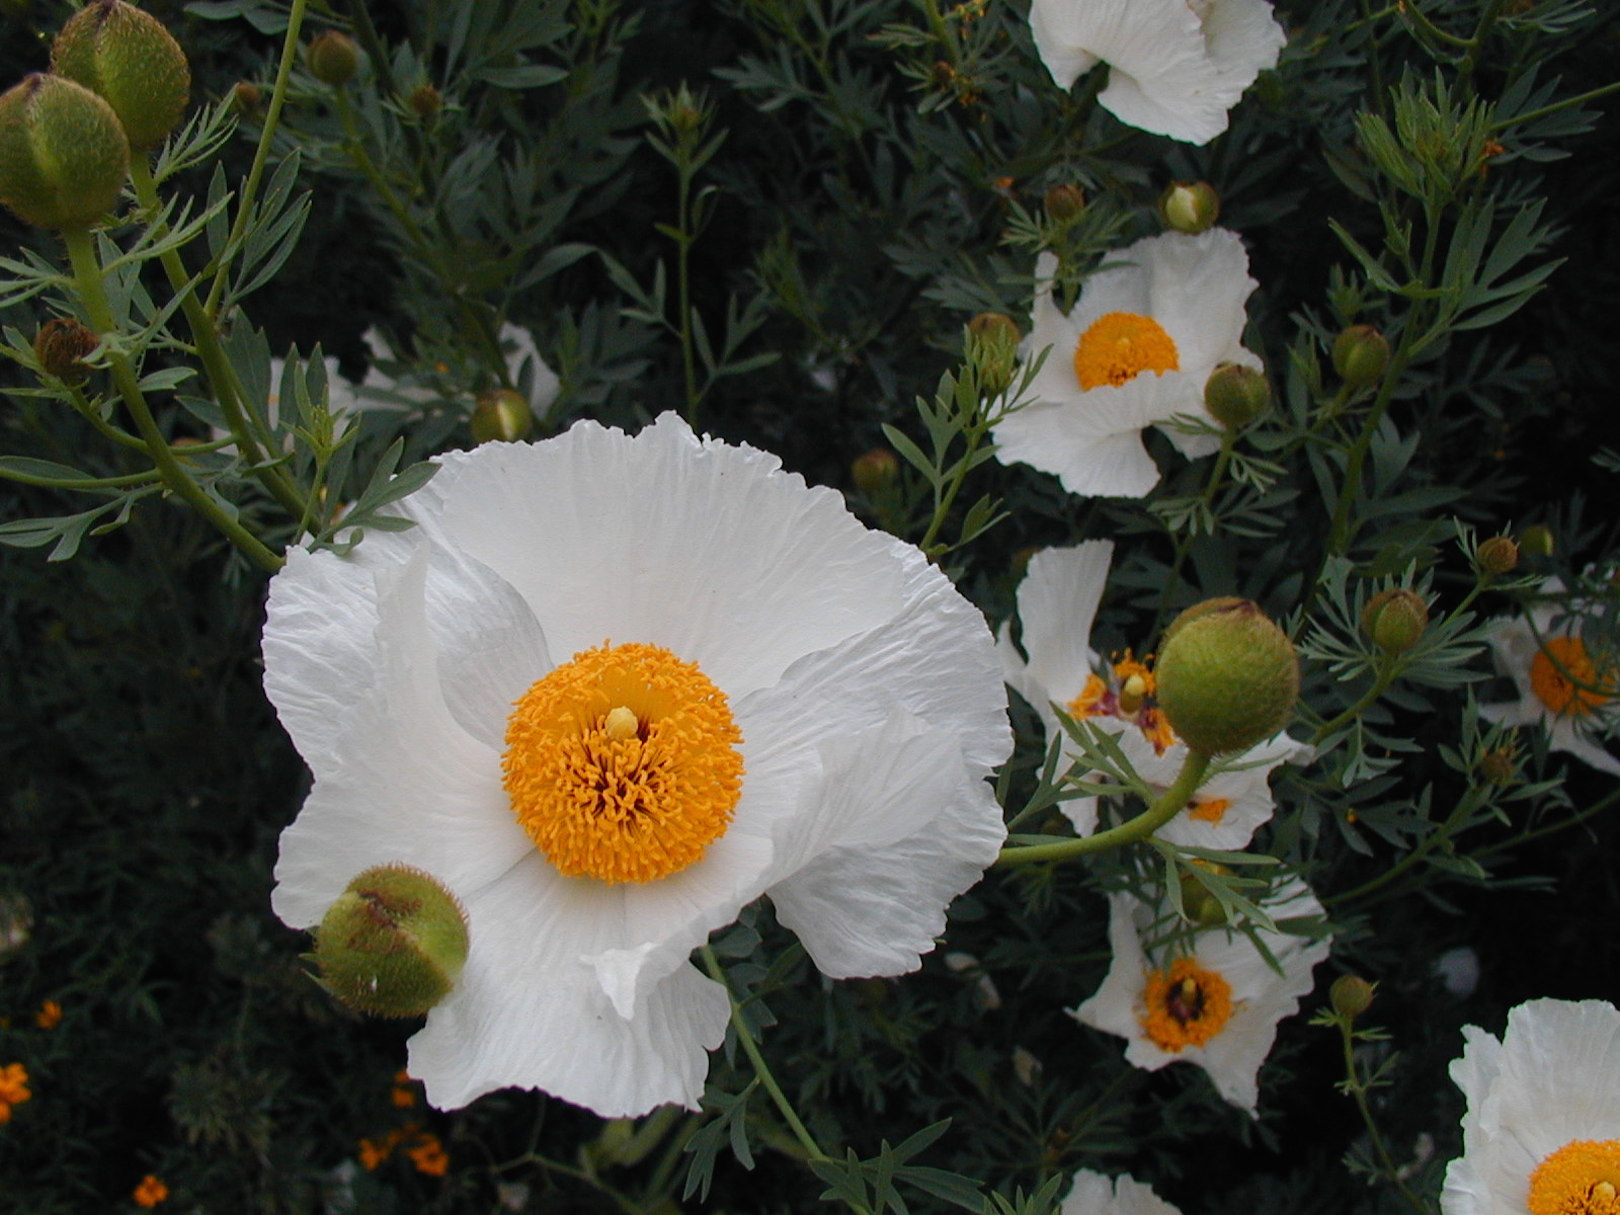 A Growing Passion Grow A Fried Egg Plant Matilija Poppy A